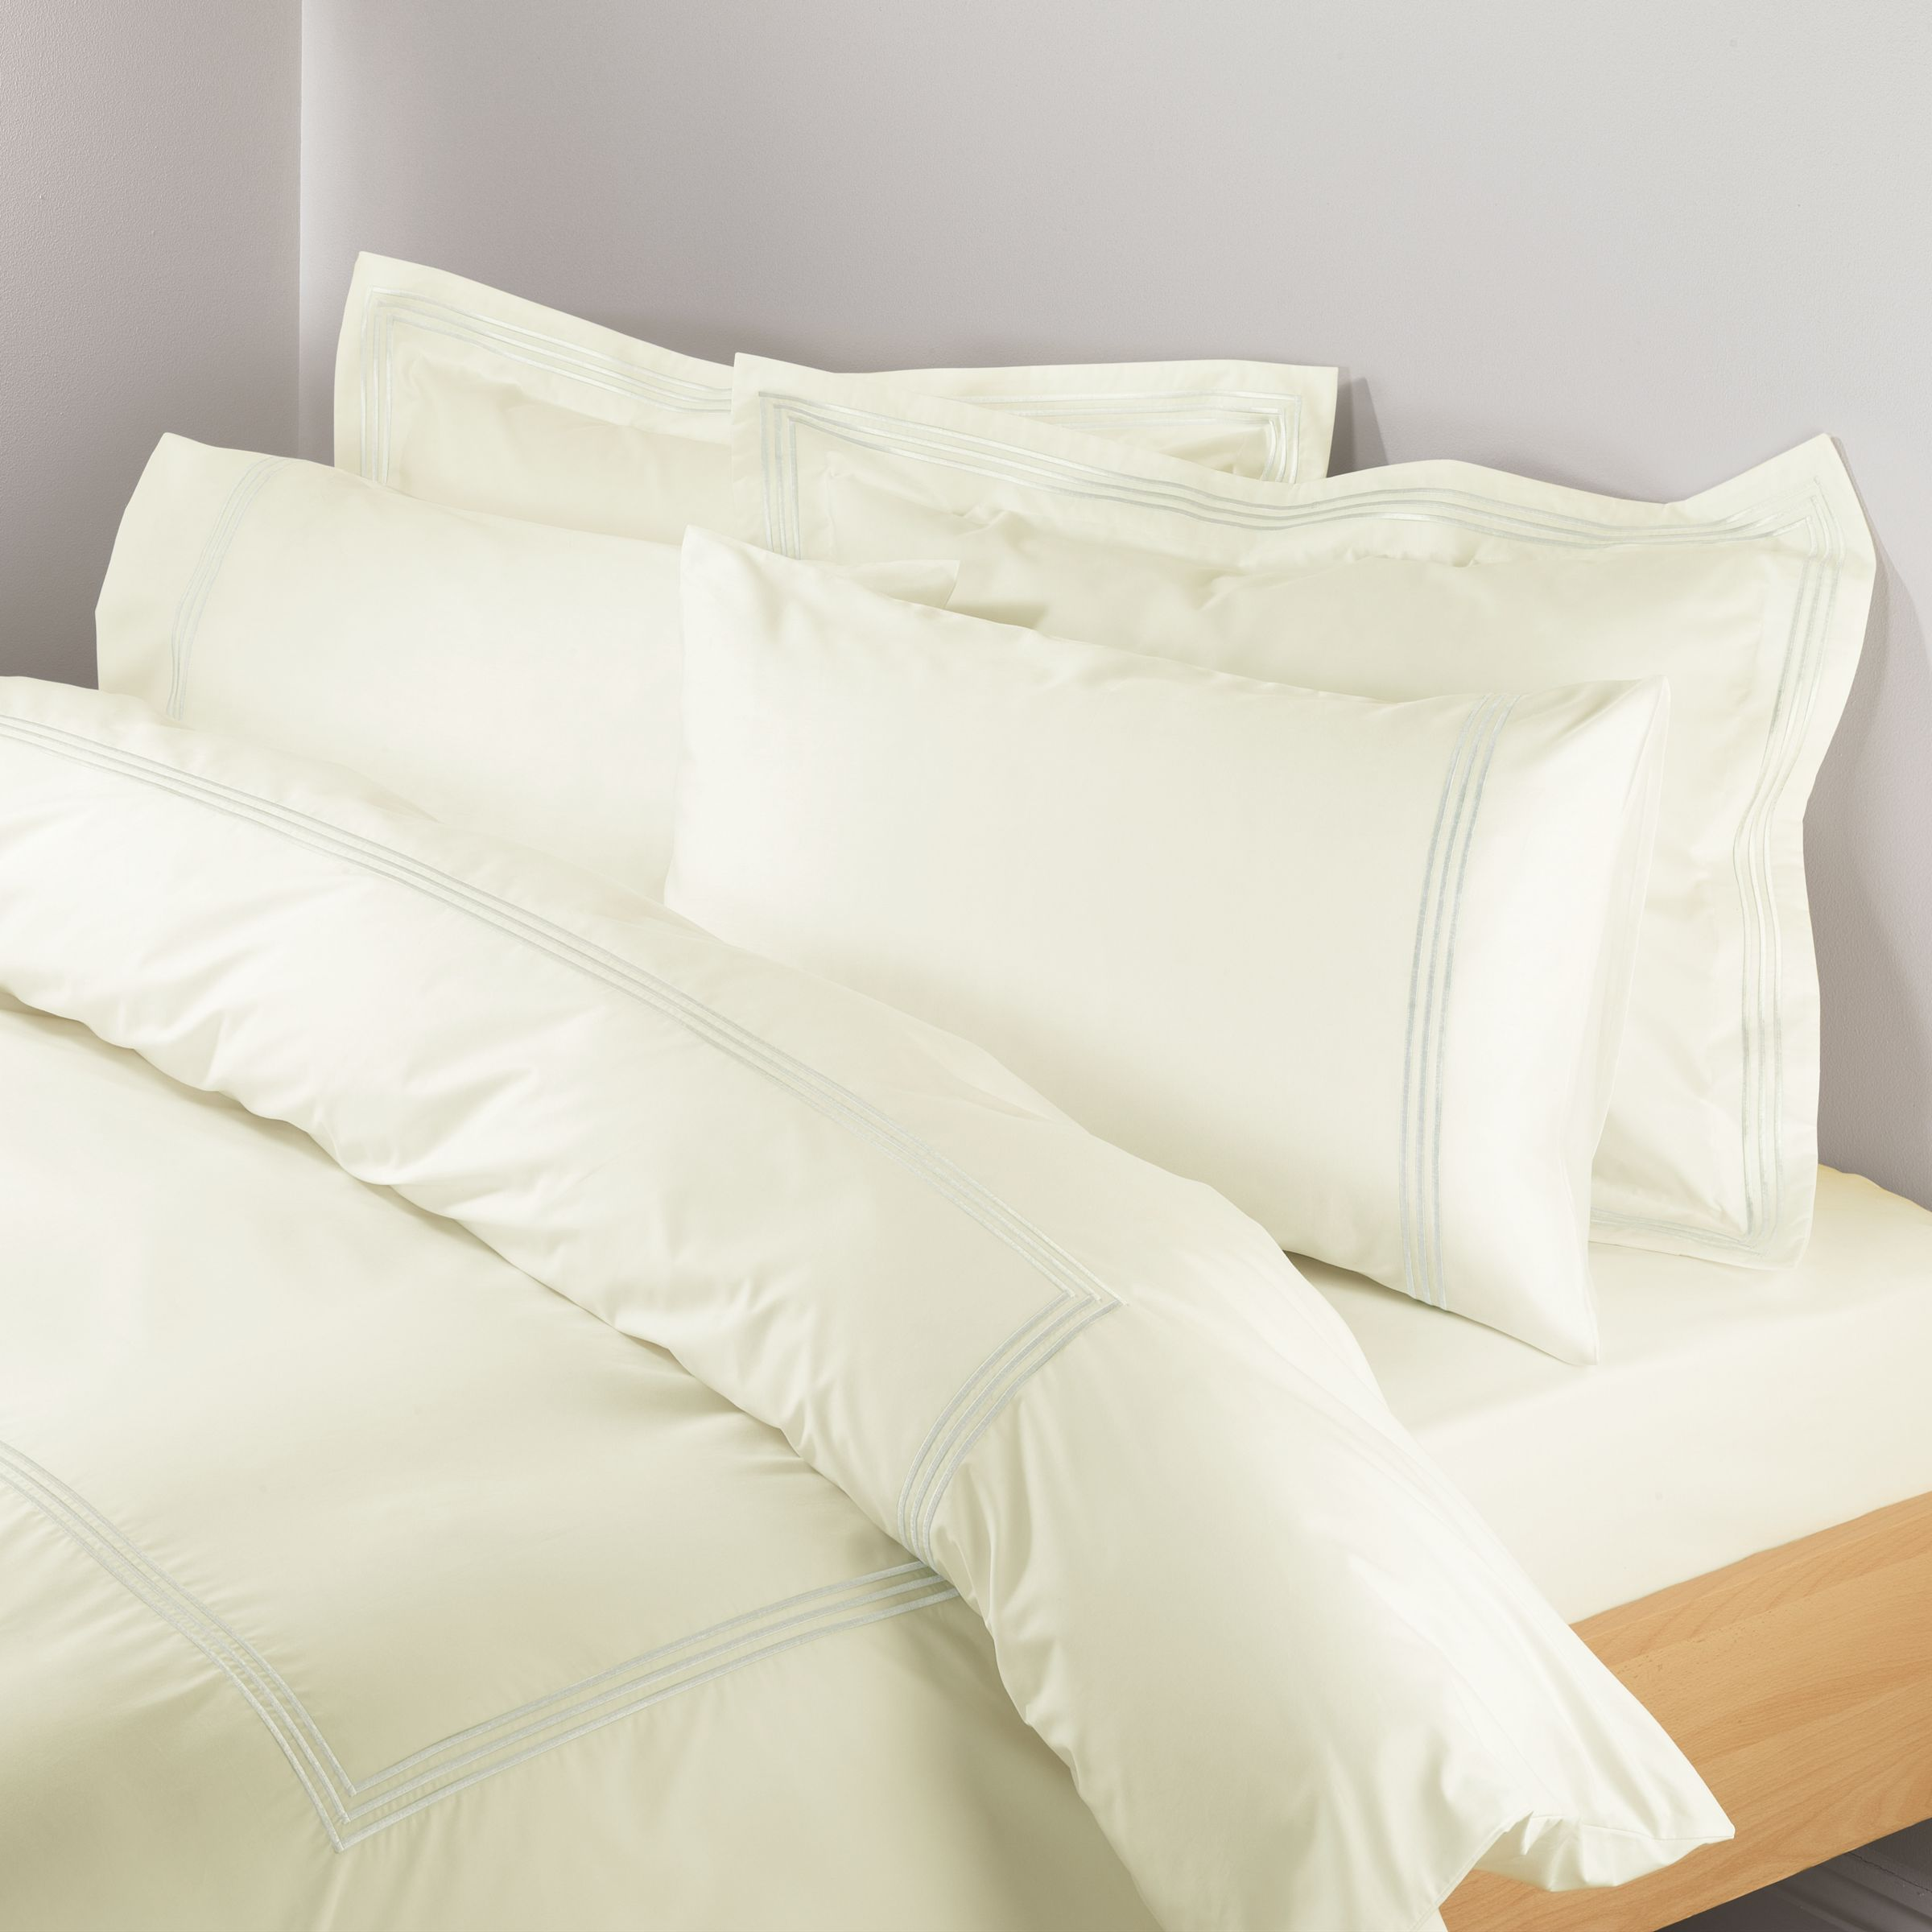 Pima 3 Row Cord Duvet Covers, Oyster